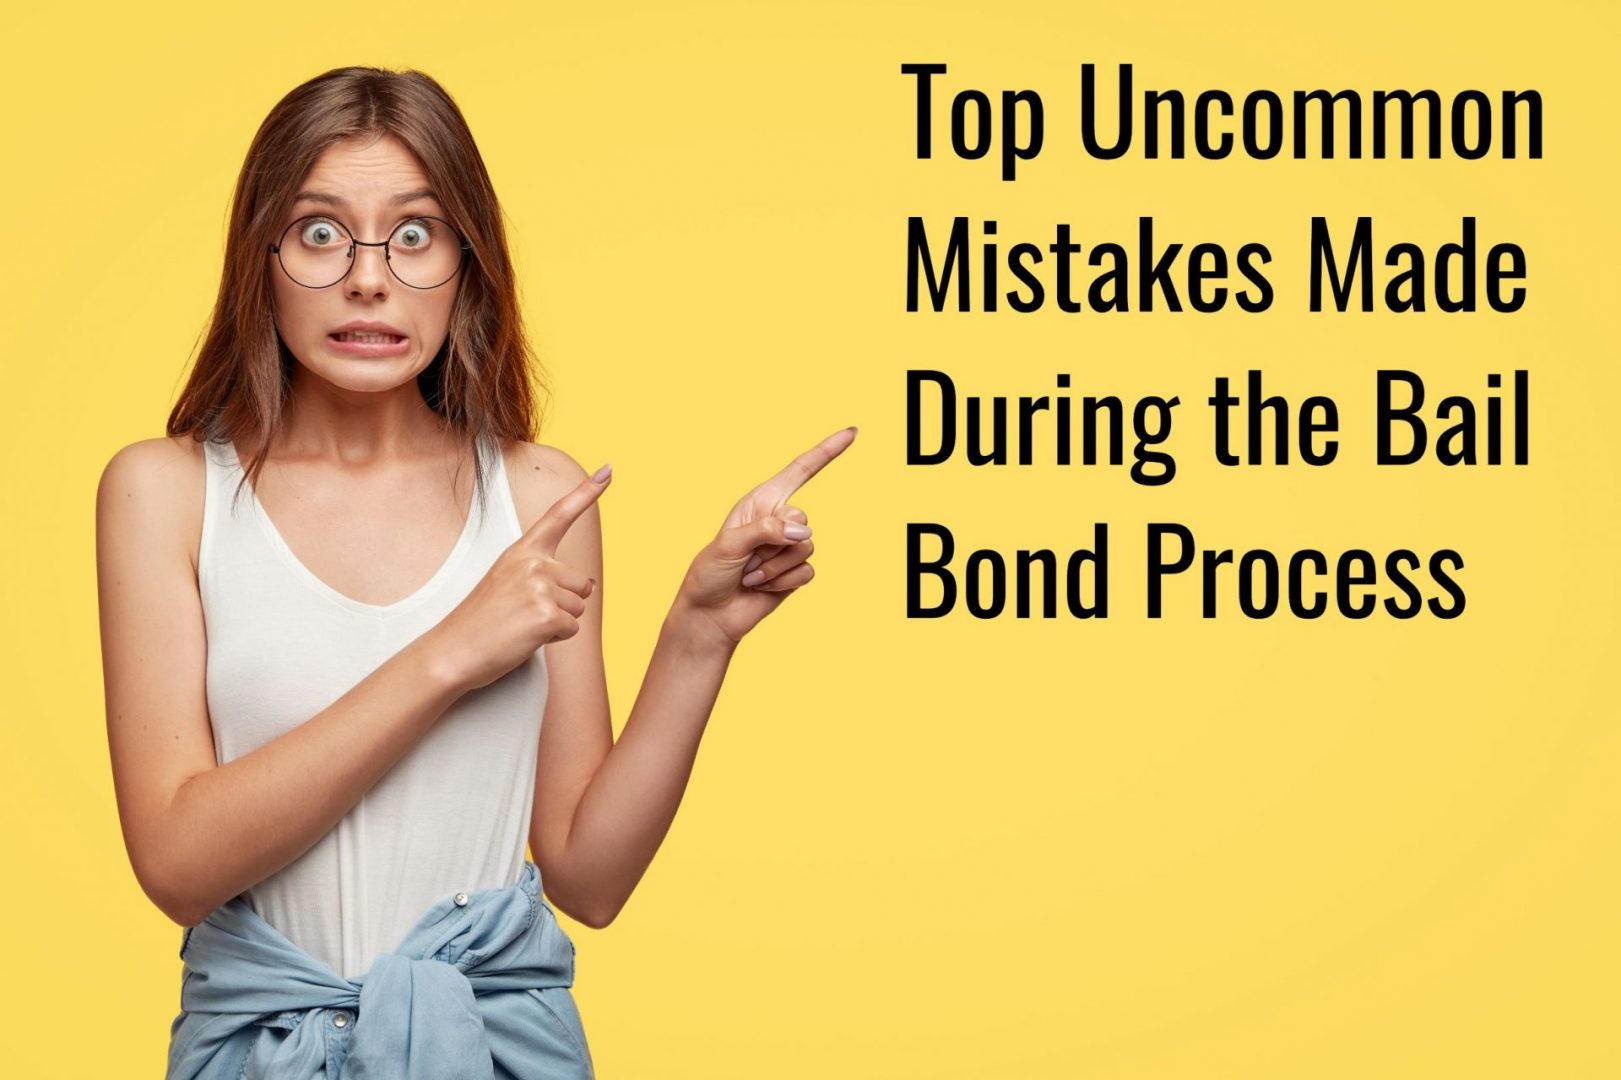 Top Uncommon Mistakes Made During the Bail Bond Process